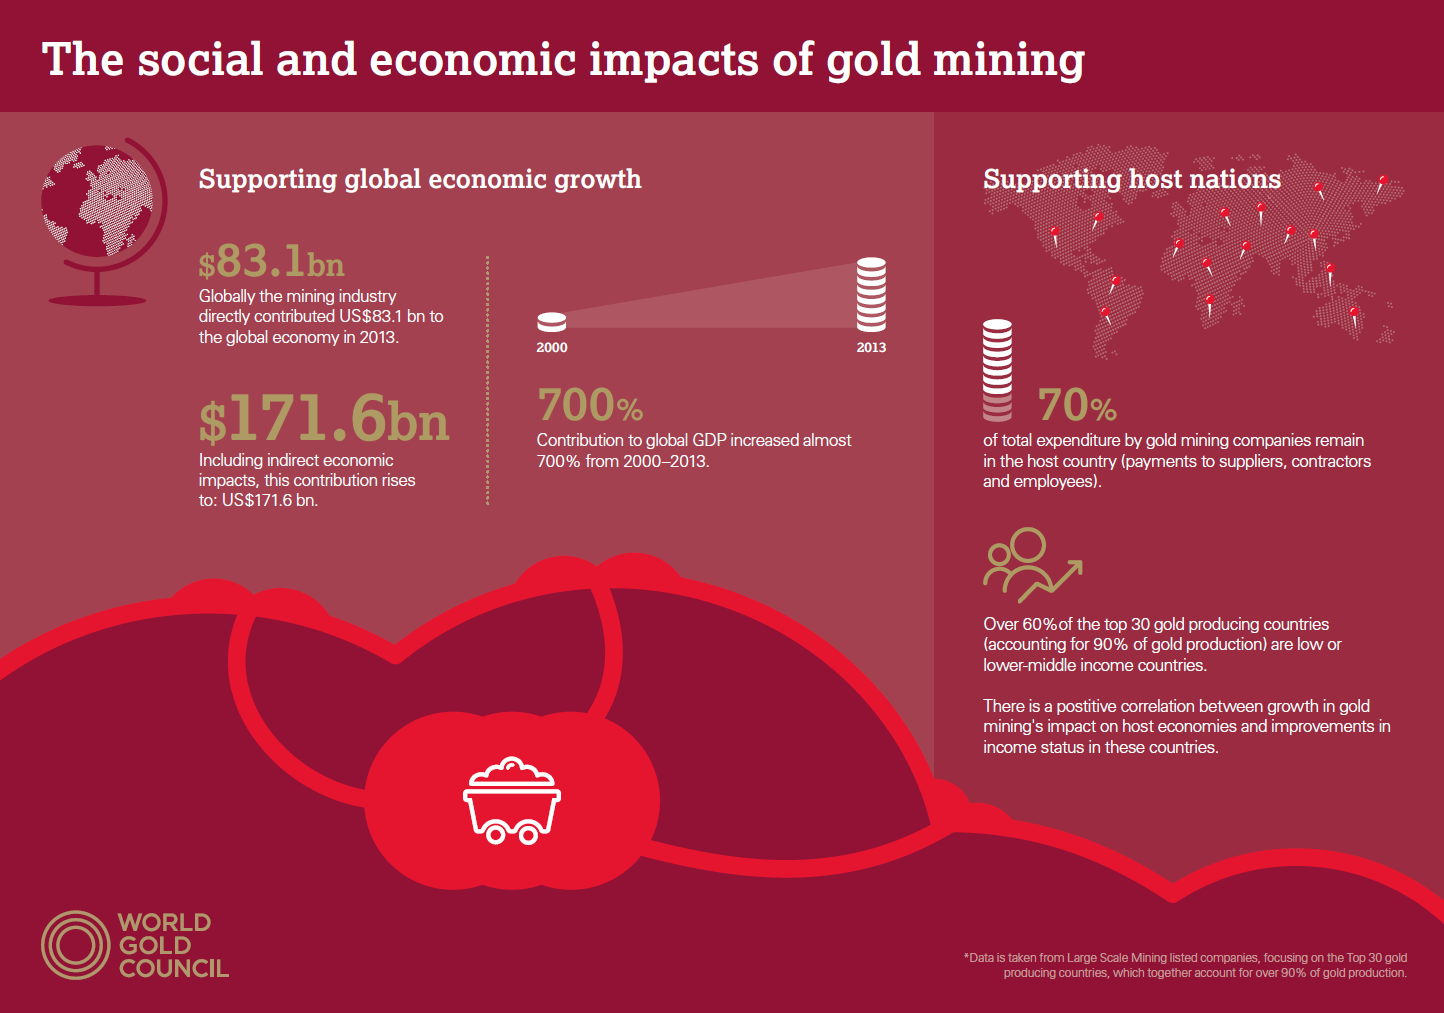 The social and economic impacts of gold mining - infographic